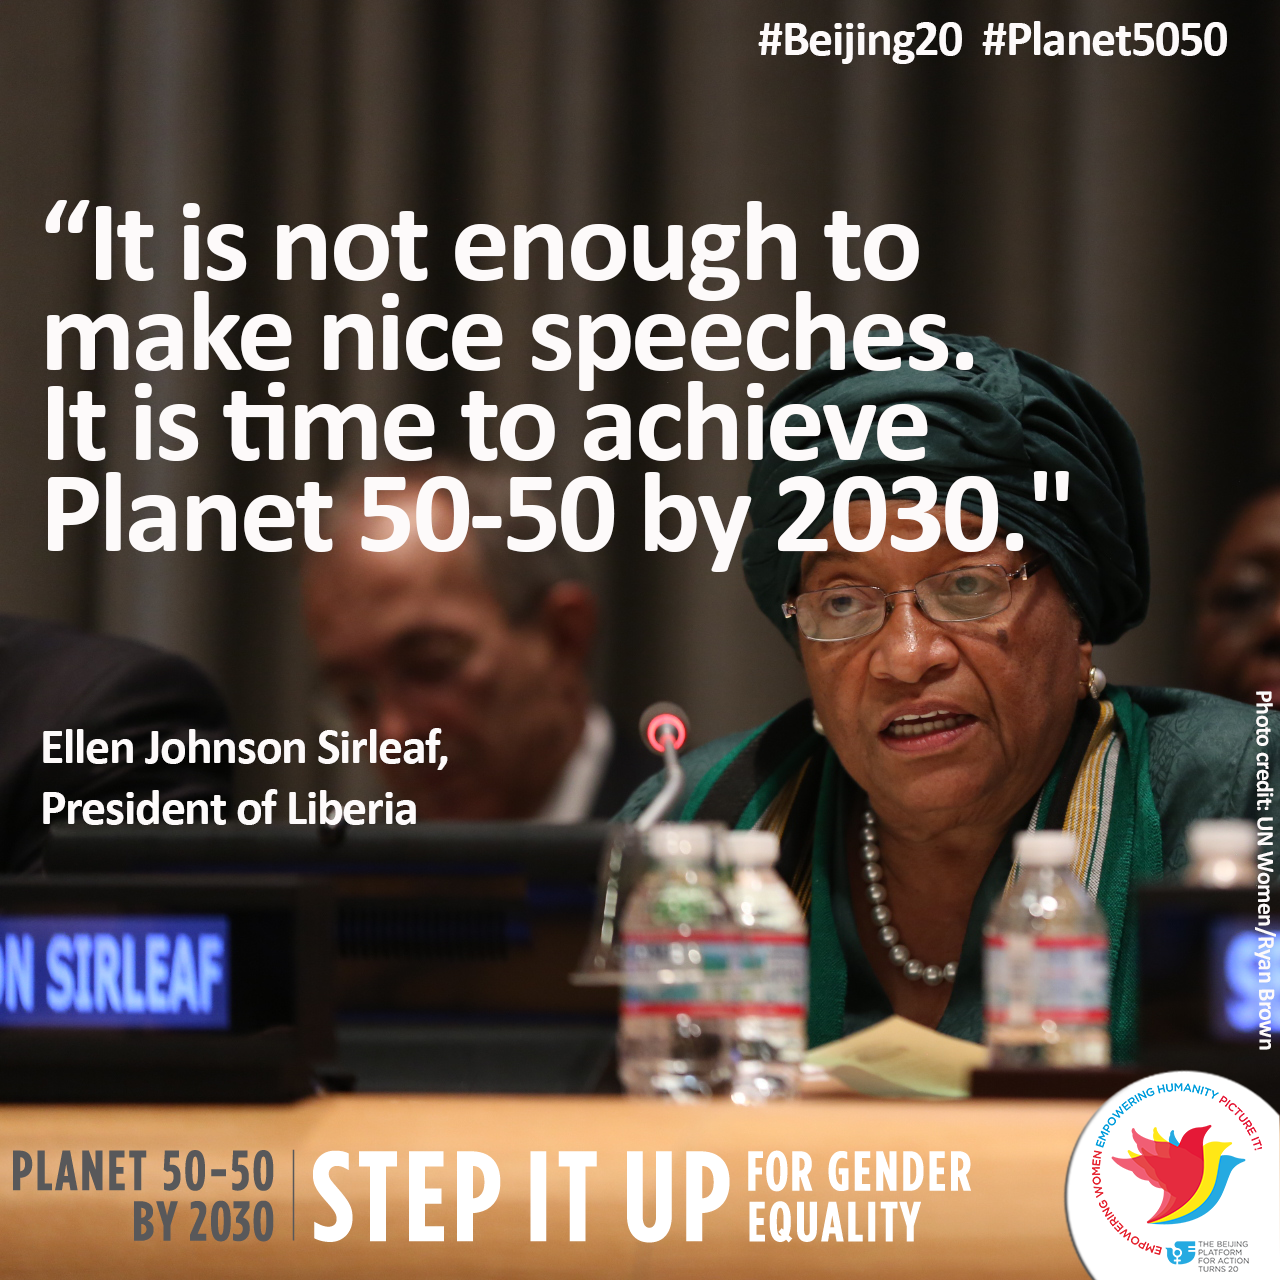 RT @phumzileunwomen: Powerful speech by President of Liberia this morning at @UN_PGA high-level event to commemorate #IWD2015 & #Beijing20 http://t.co/6Fy1SoUp3d